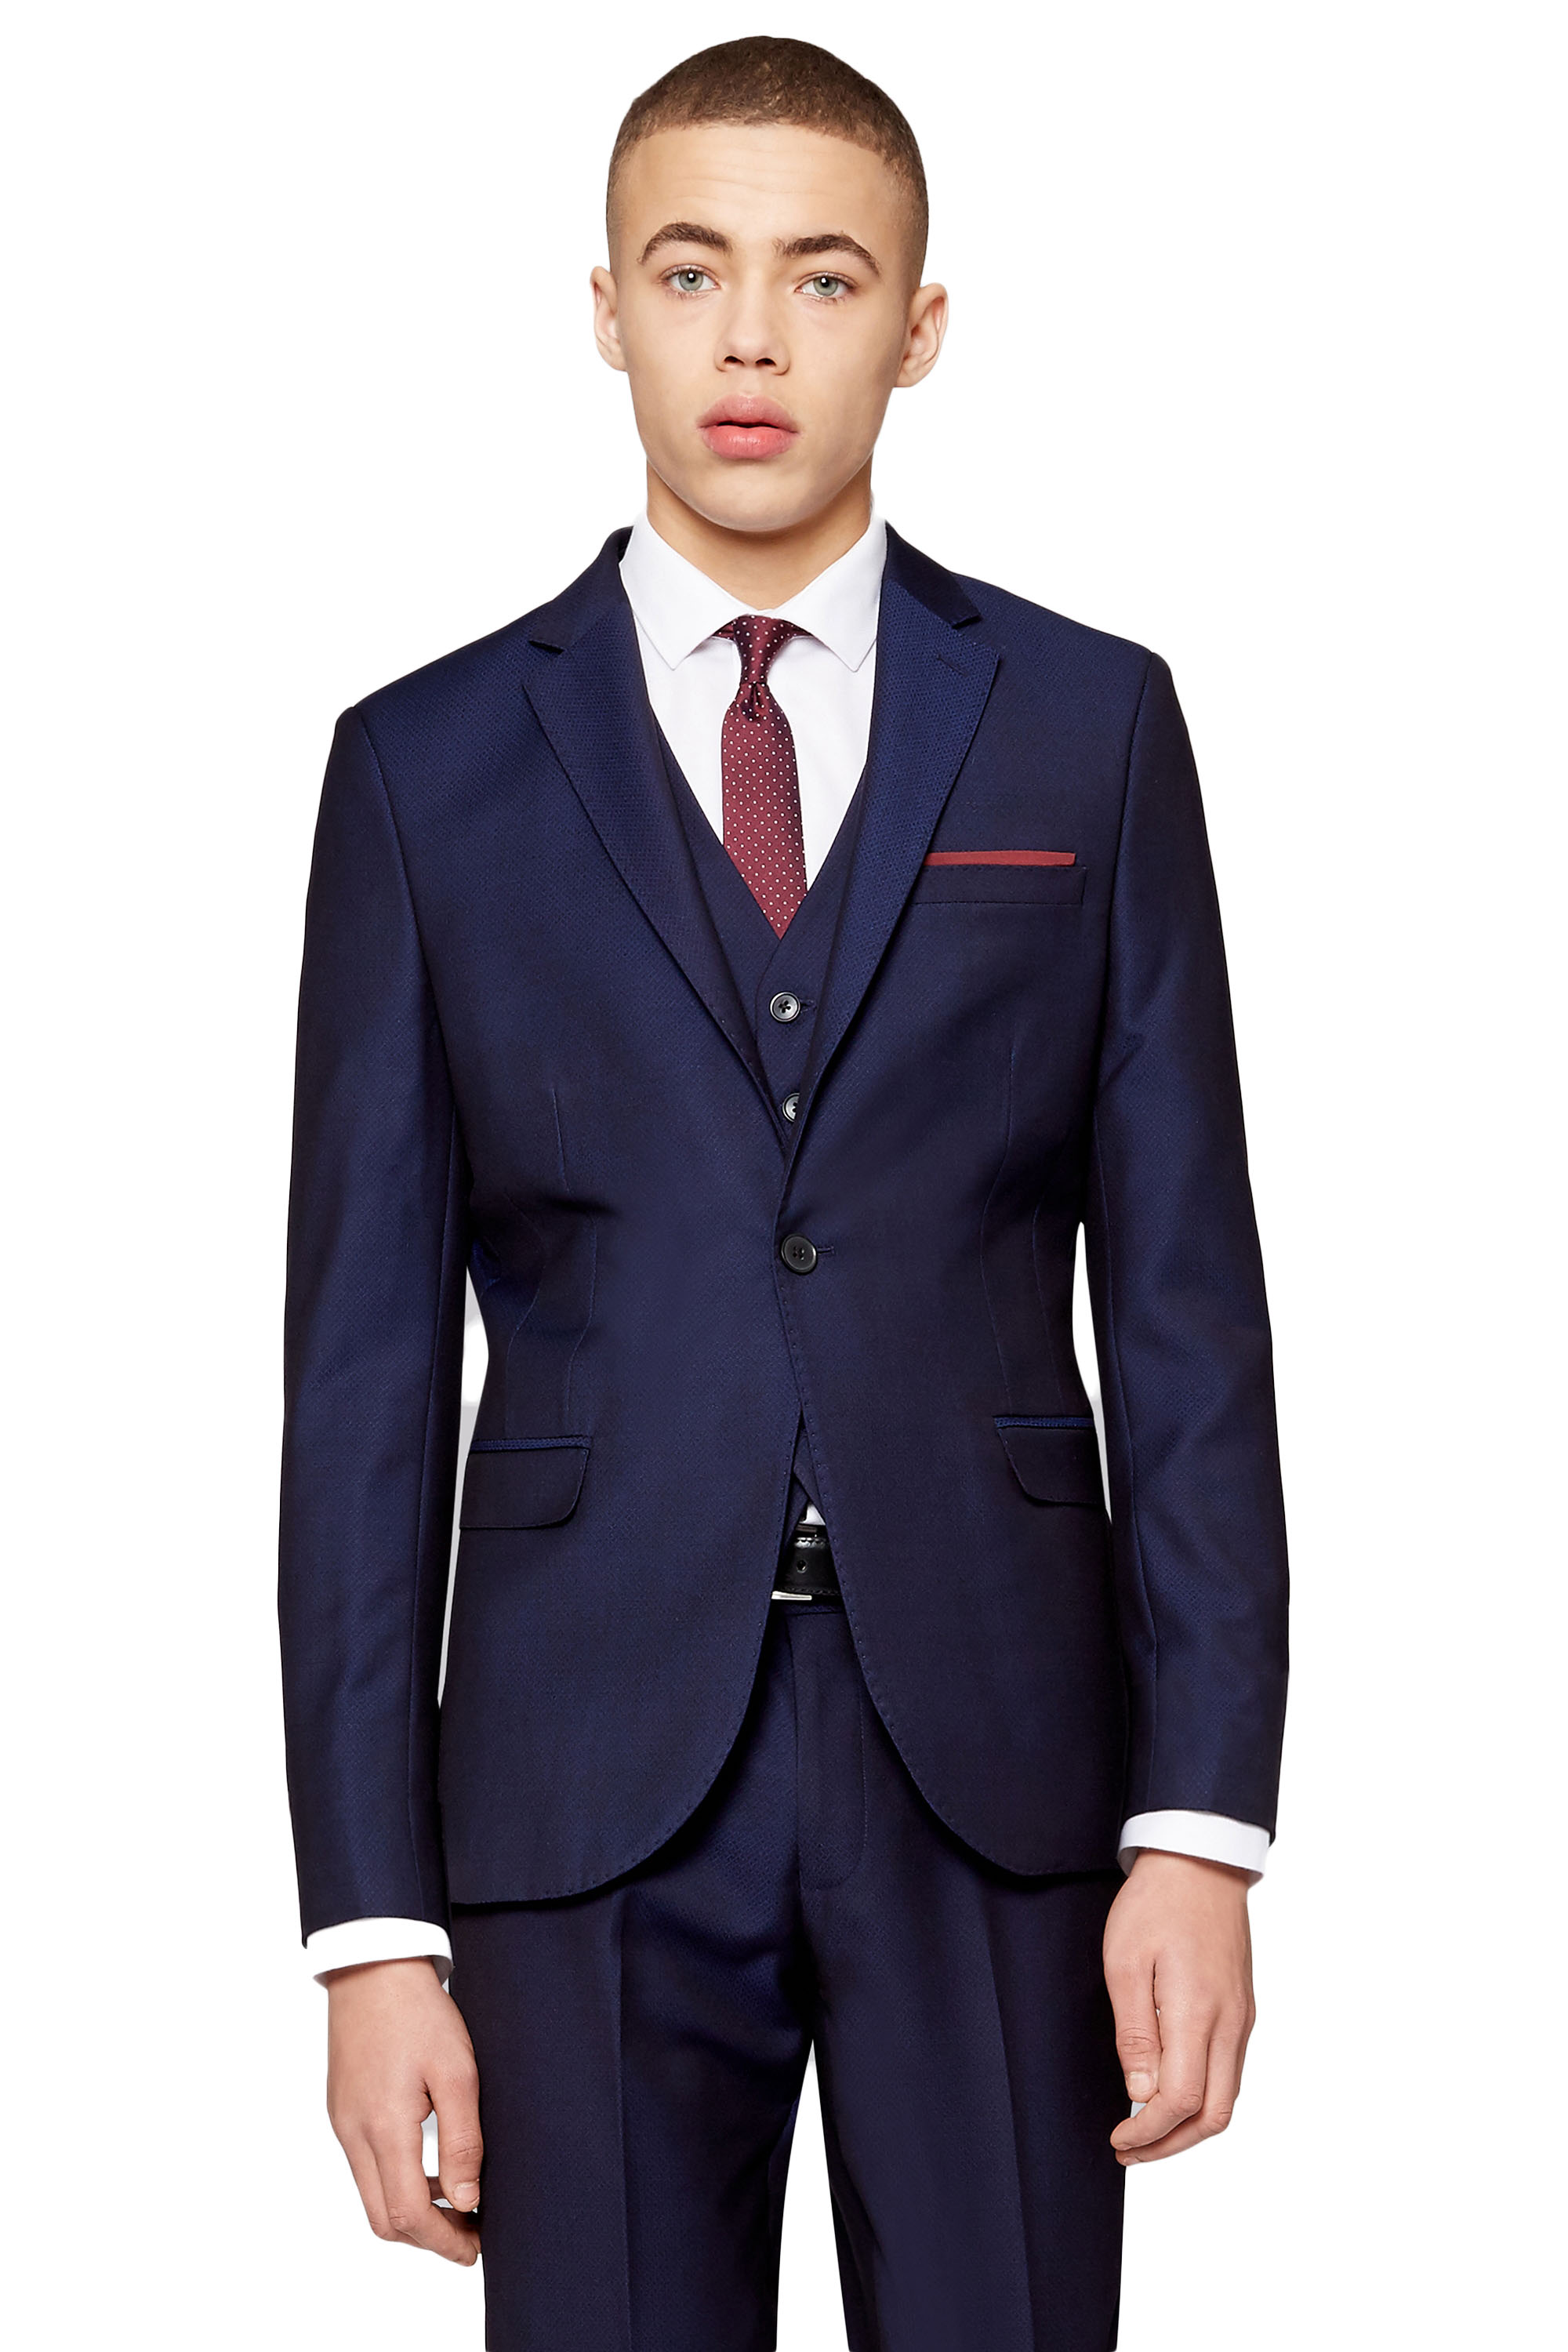 Navy Blazer Slim Fit - results from brands Calvin Klein, Kenneth Cole, Tommy Hilfiger, products like Perry Ellis NEW Blue Mens 40 R Travel Luxe Slim Fit Two Button Blazer, Slim Fit Suit + Tie: Navy/46Lx40W, New Mens Navy Blazer Slim Fit Fraternity Jacket Gold Button Fraternal SALE Coat, Men's Blazers & Suits.